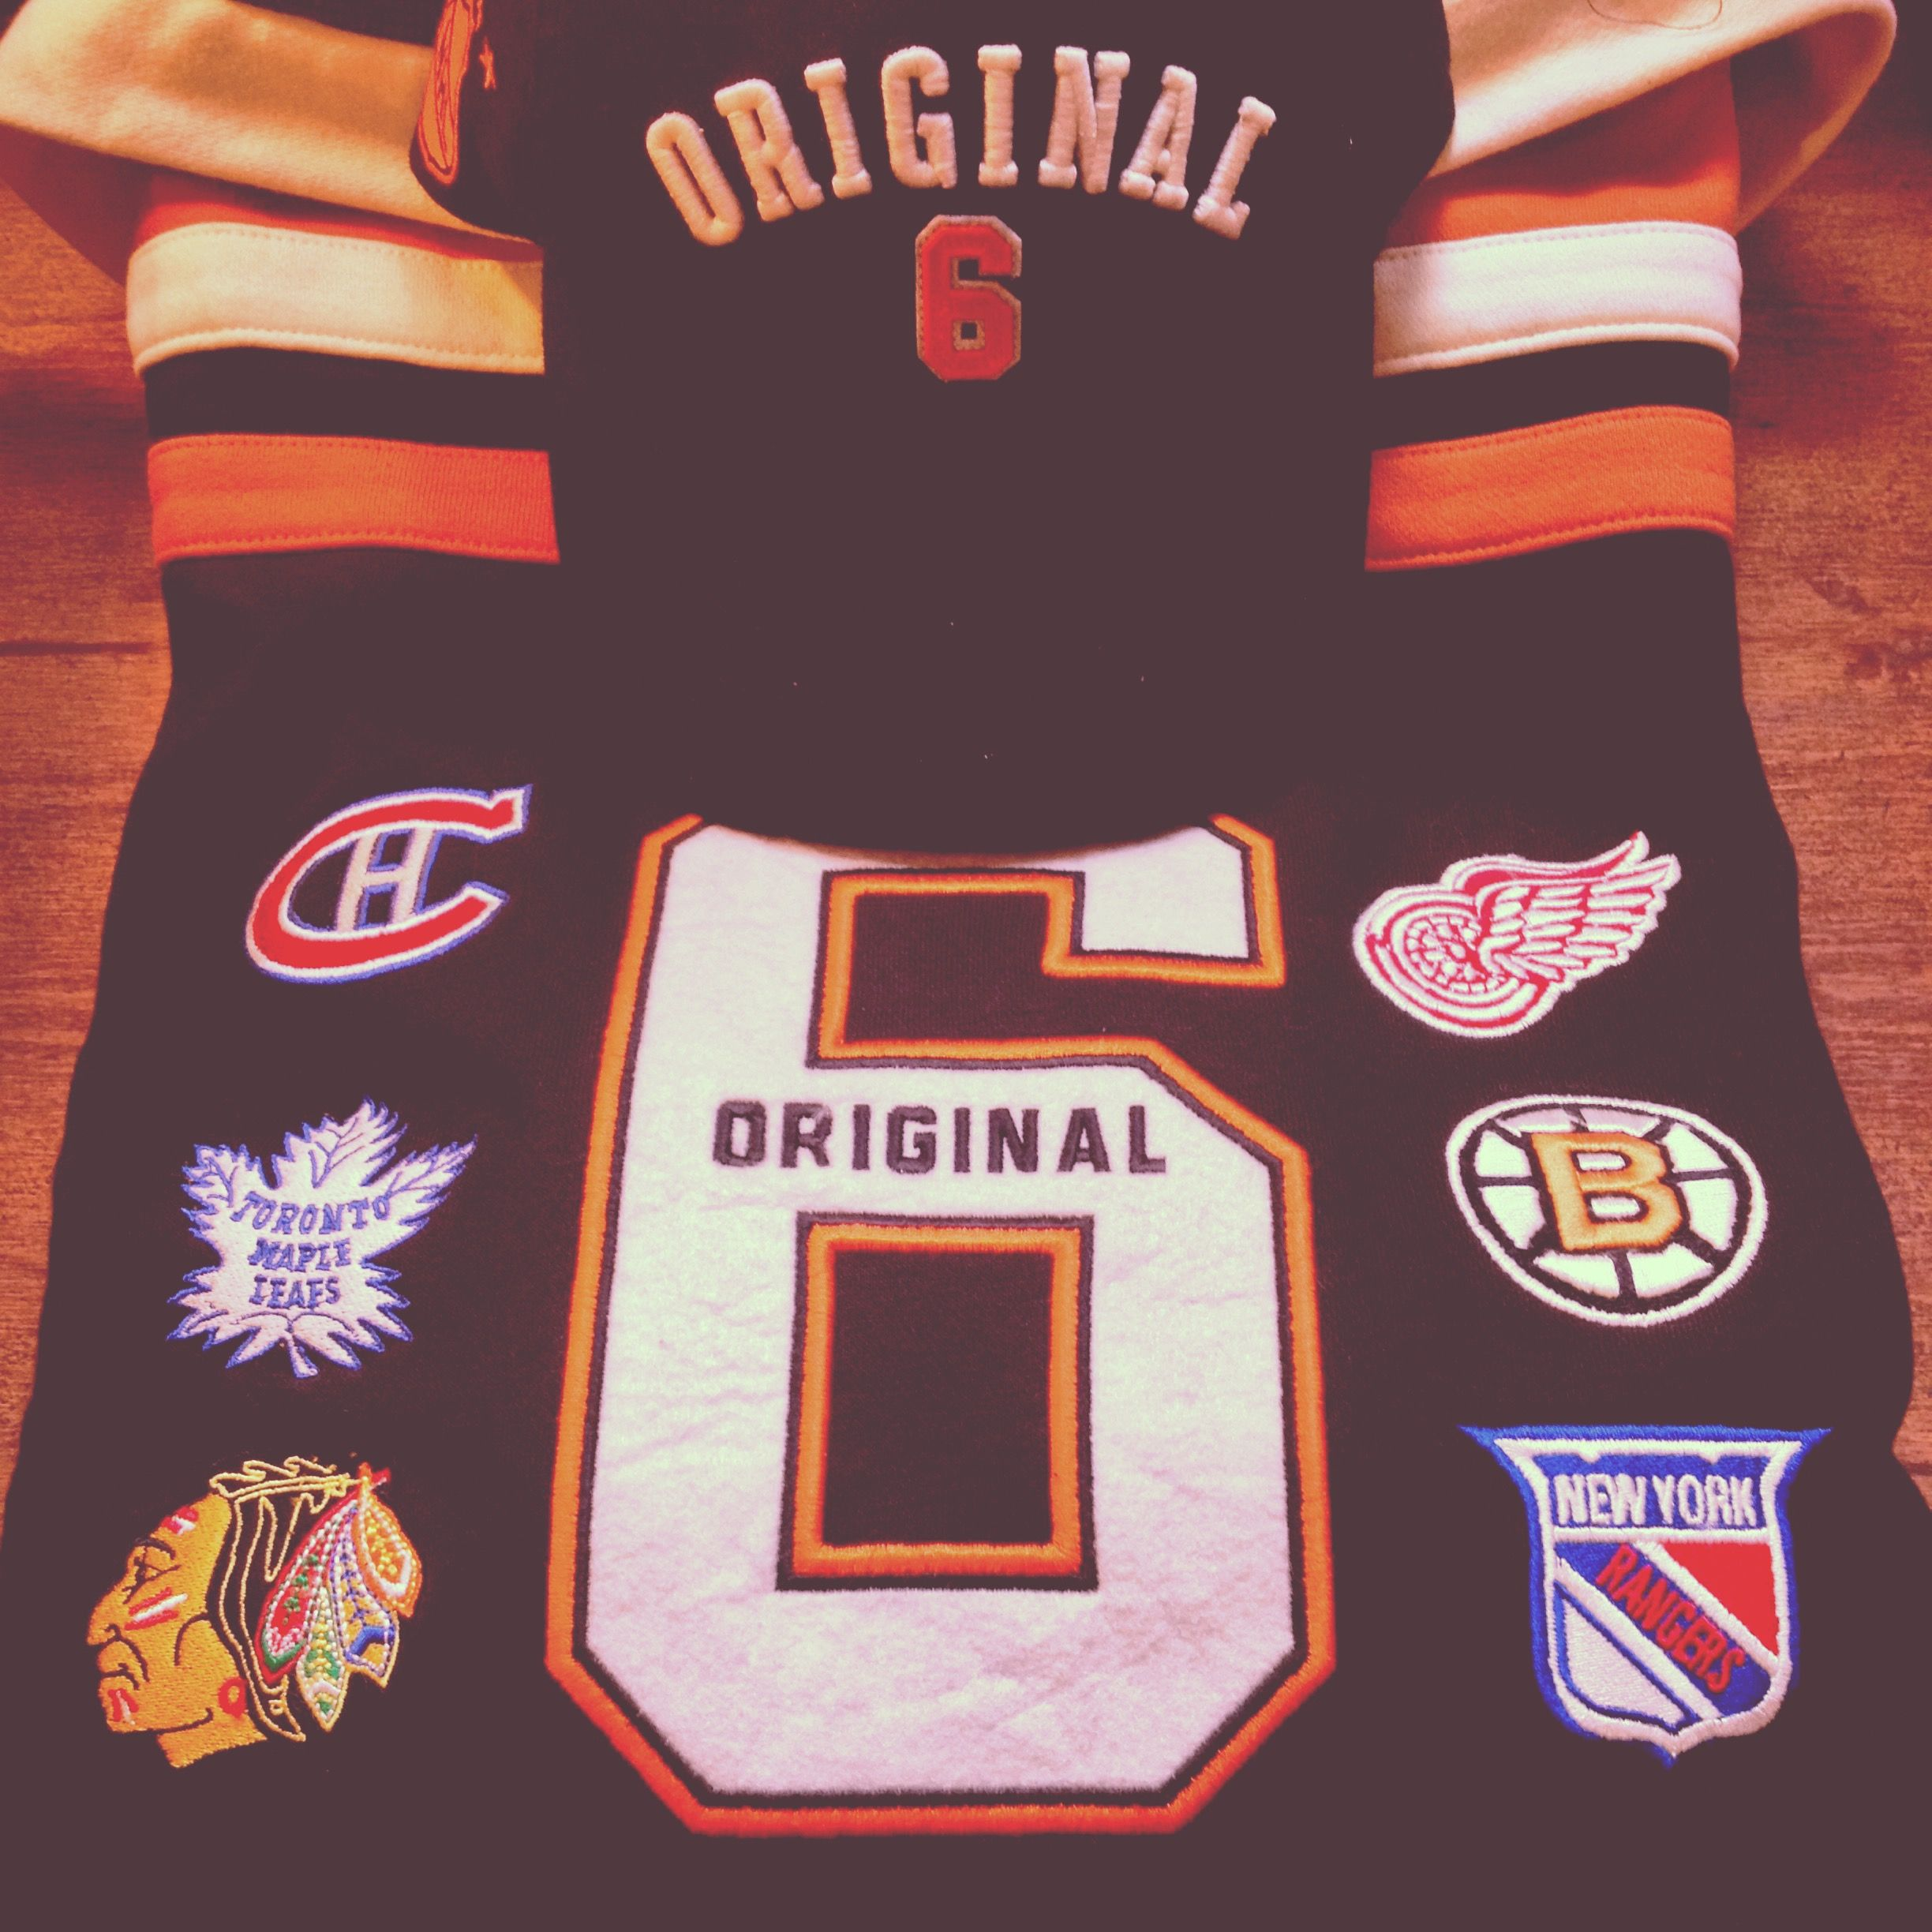 b3ae9087d15 Our collection of Original 6 apparel keeps growing and growing... Thanks to  Old Time Hockey. We're ready. Let's do this